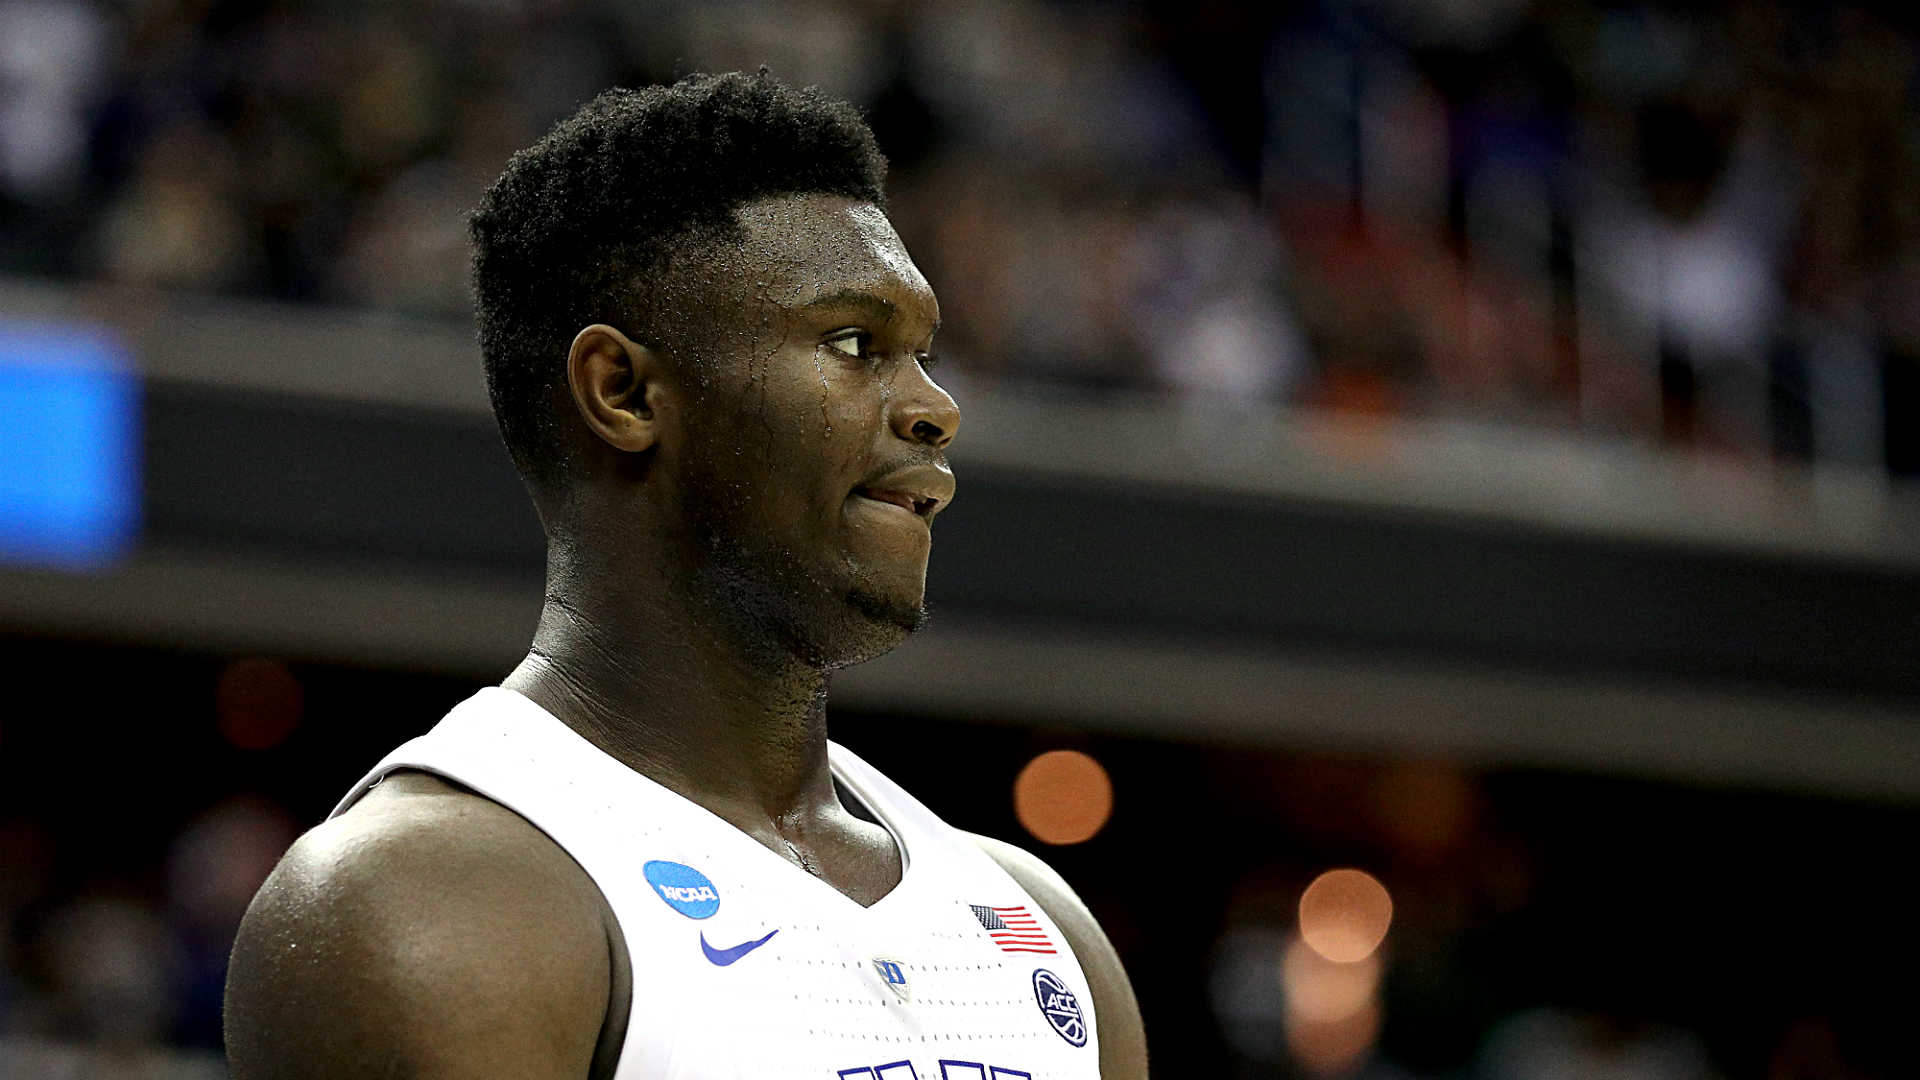 Zion Williamson lawsuit, explained: What to know about allegations of impermissible benefits at Duke